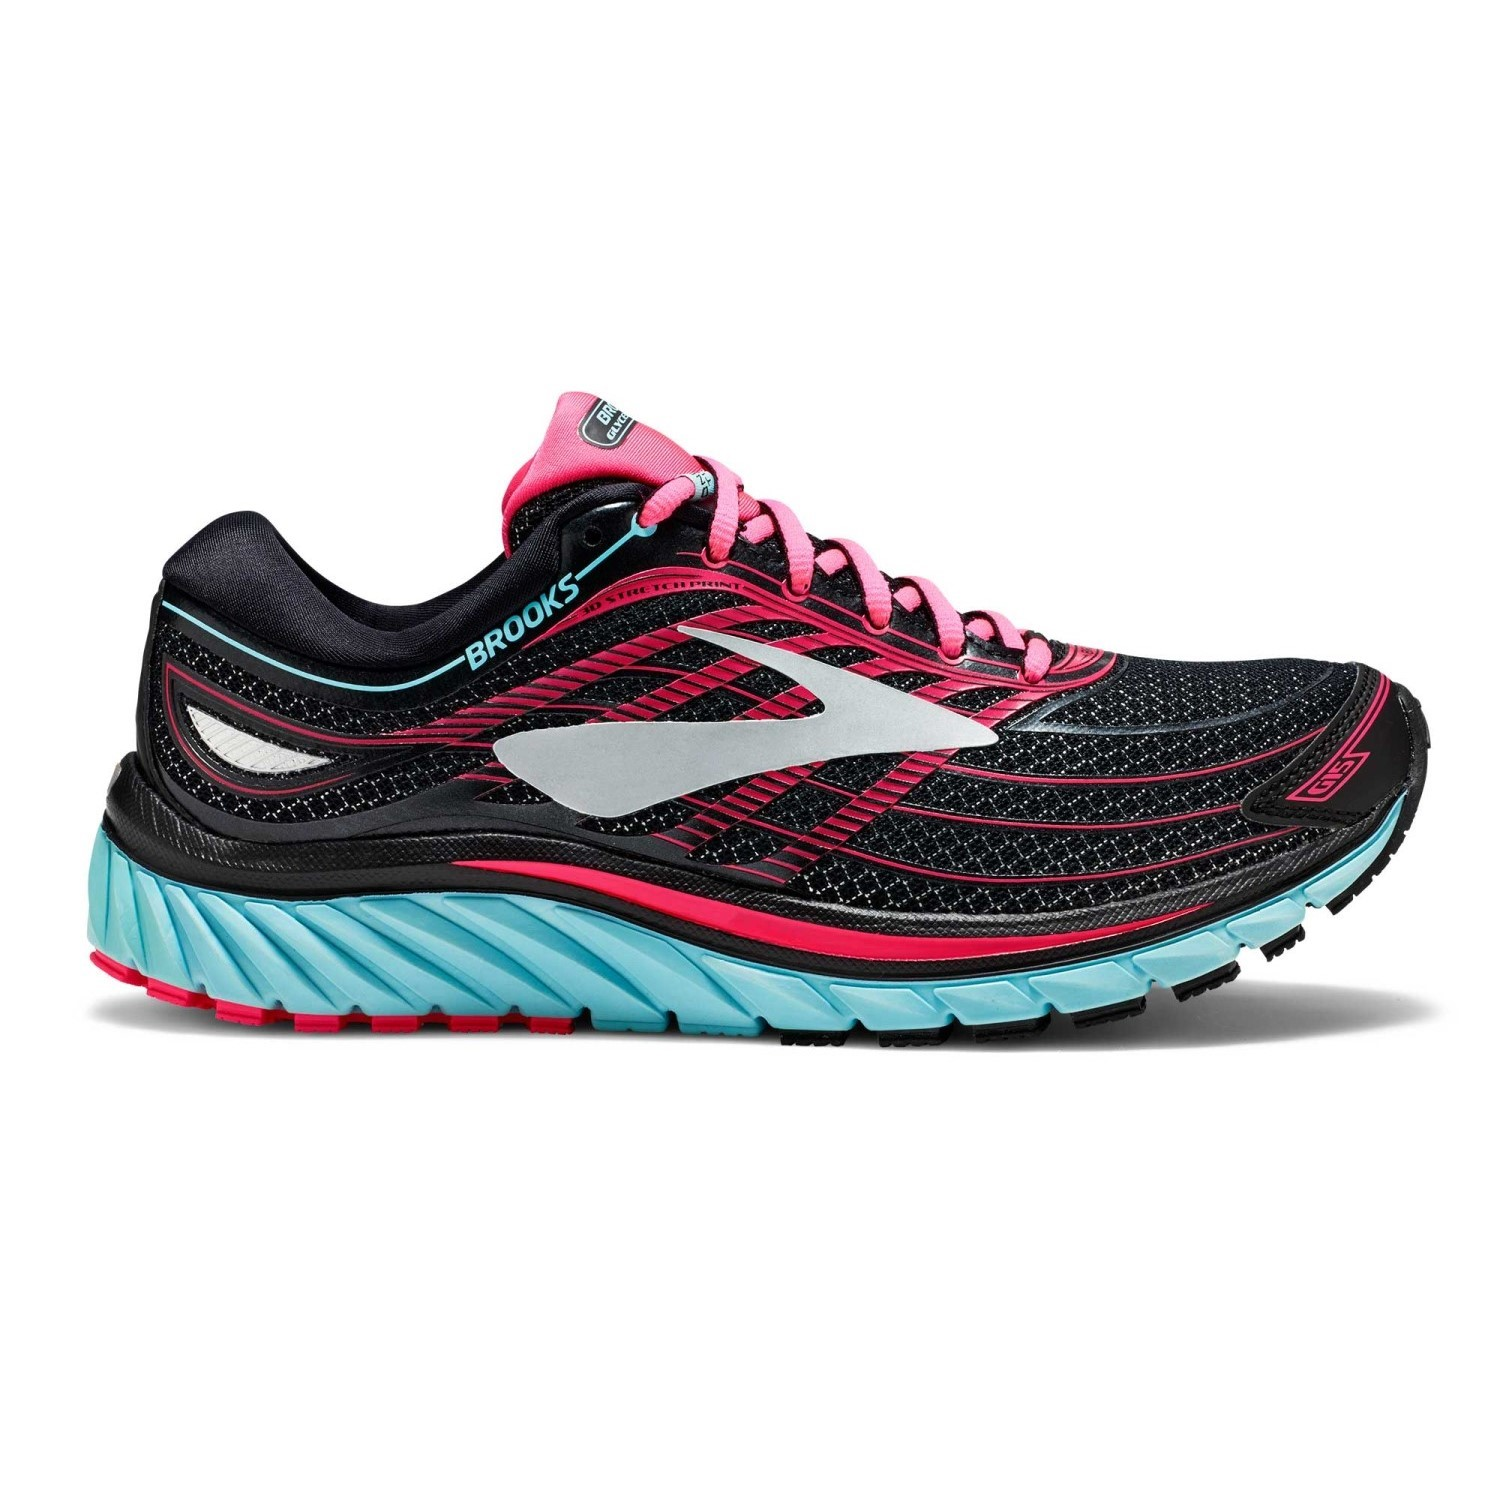 7c4cc36586774 Brooks Glycerin 15 - Womens Running Shoes - Black Island Blue Diva Pink